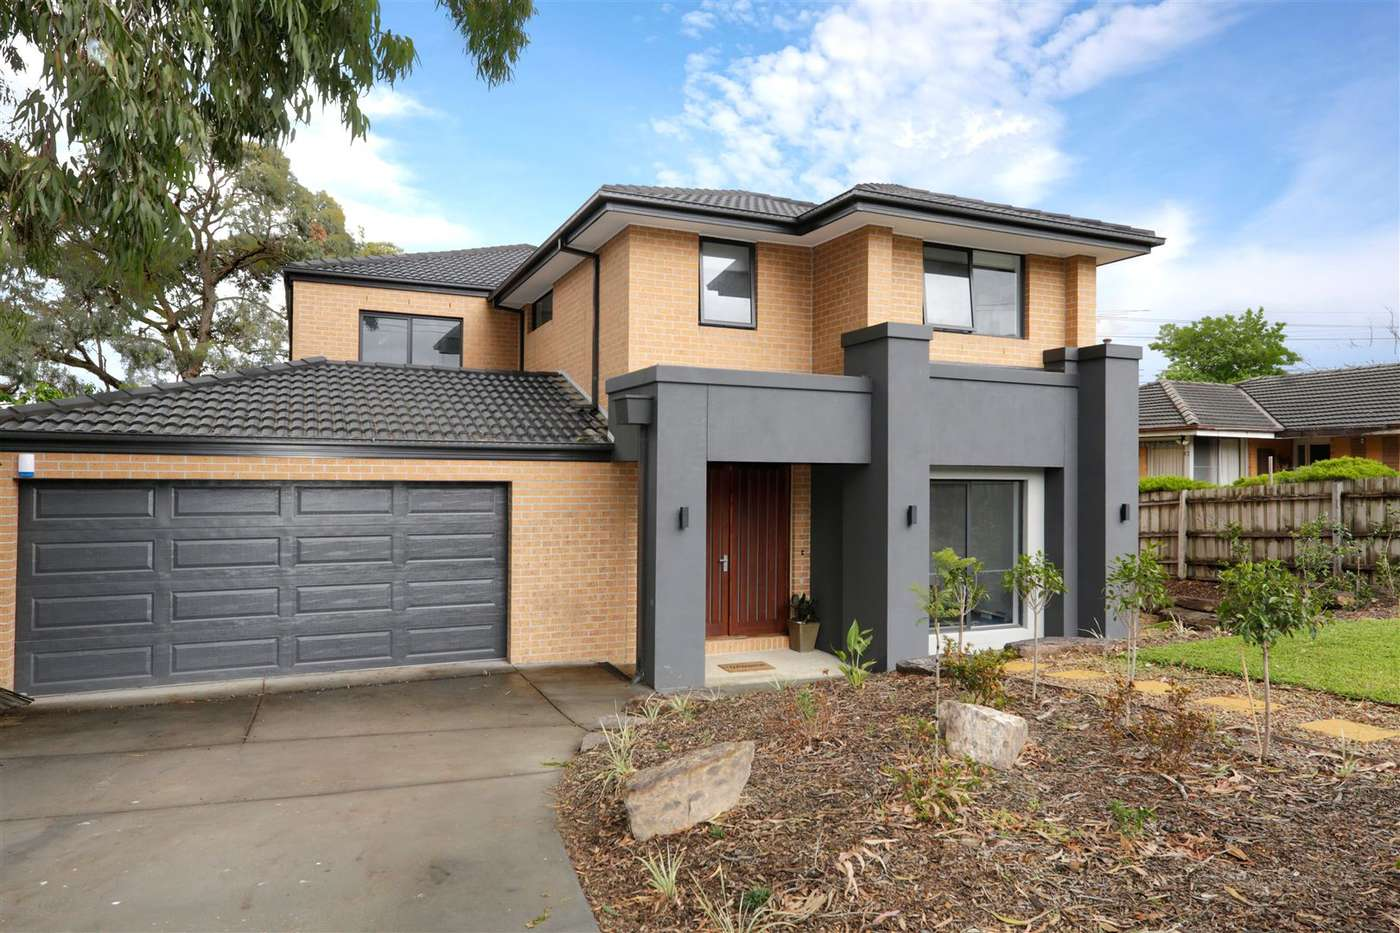 Main view of Homely house listing, 21 Sampson Drive, Mount Waverley, VIC 3149